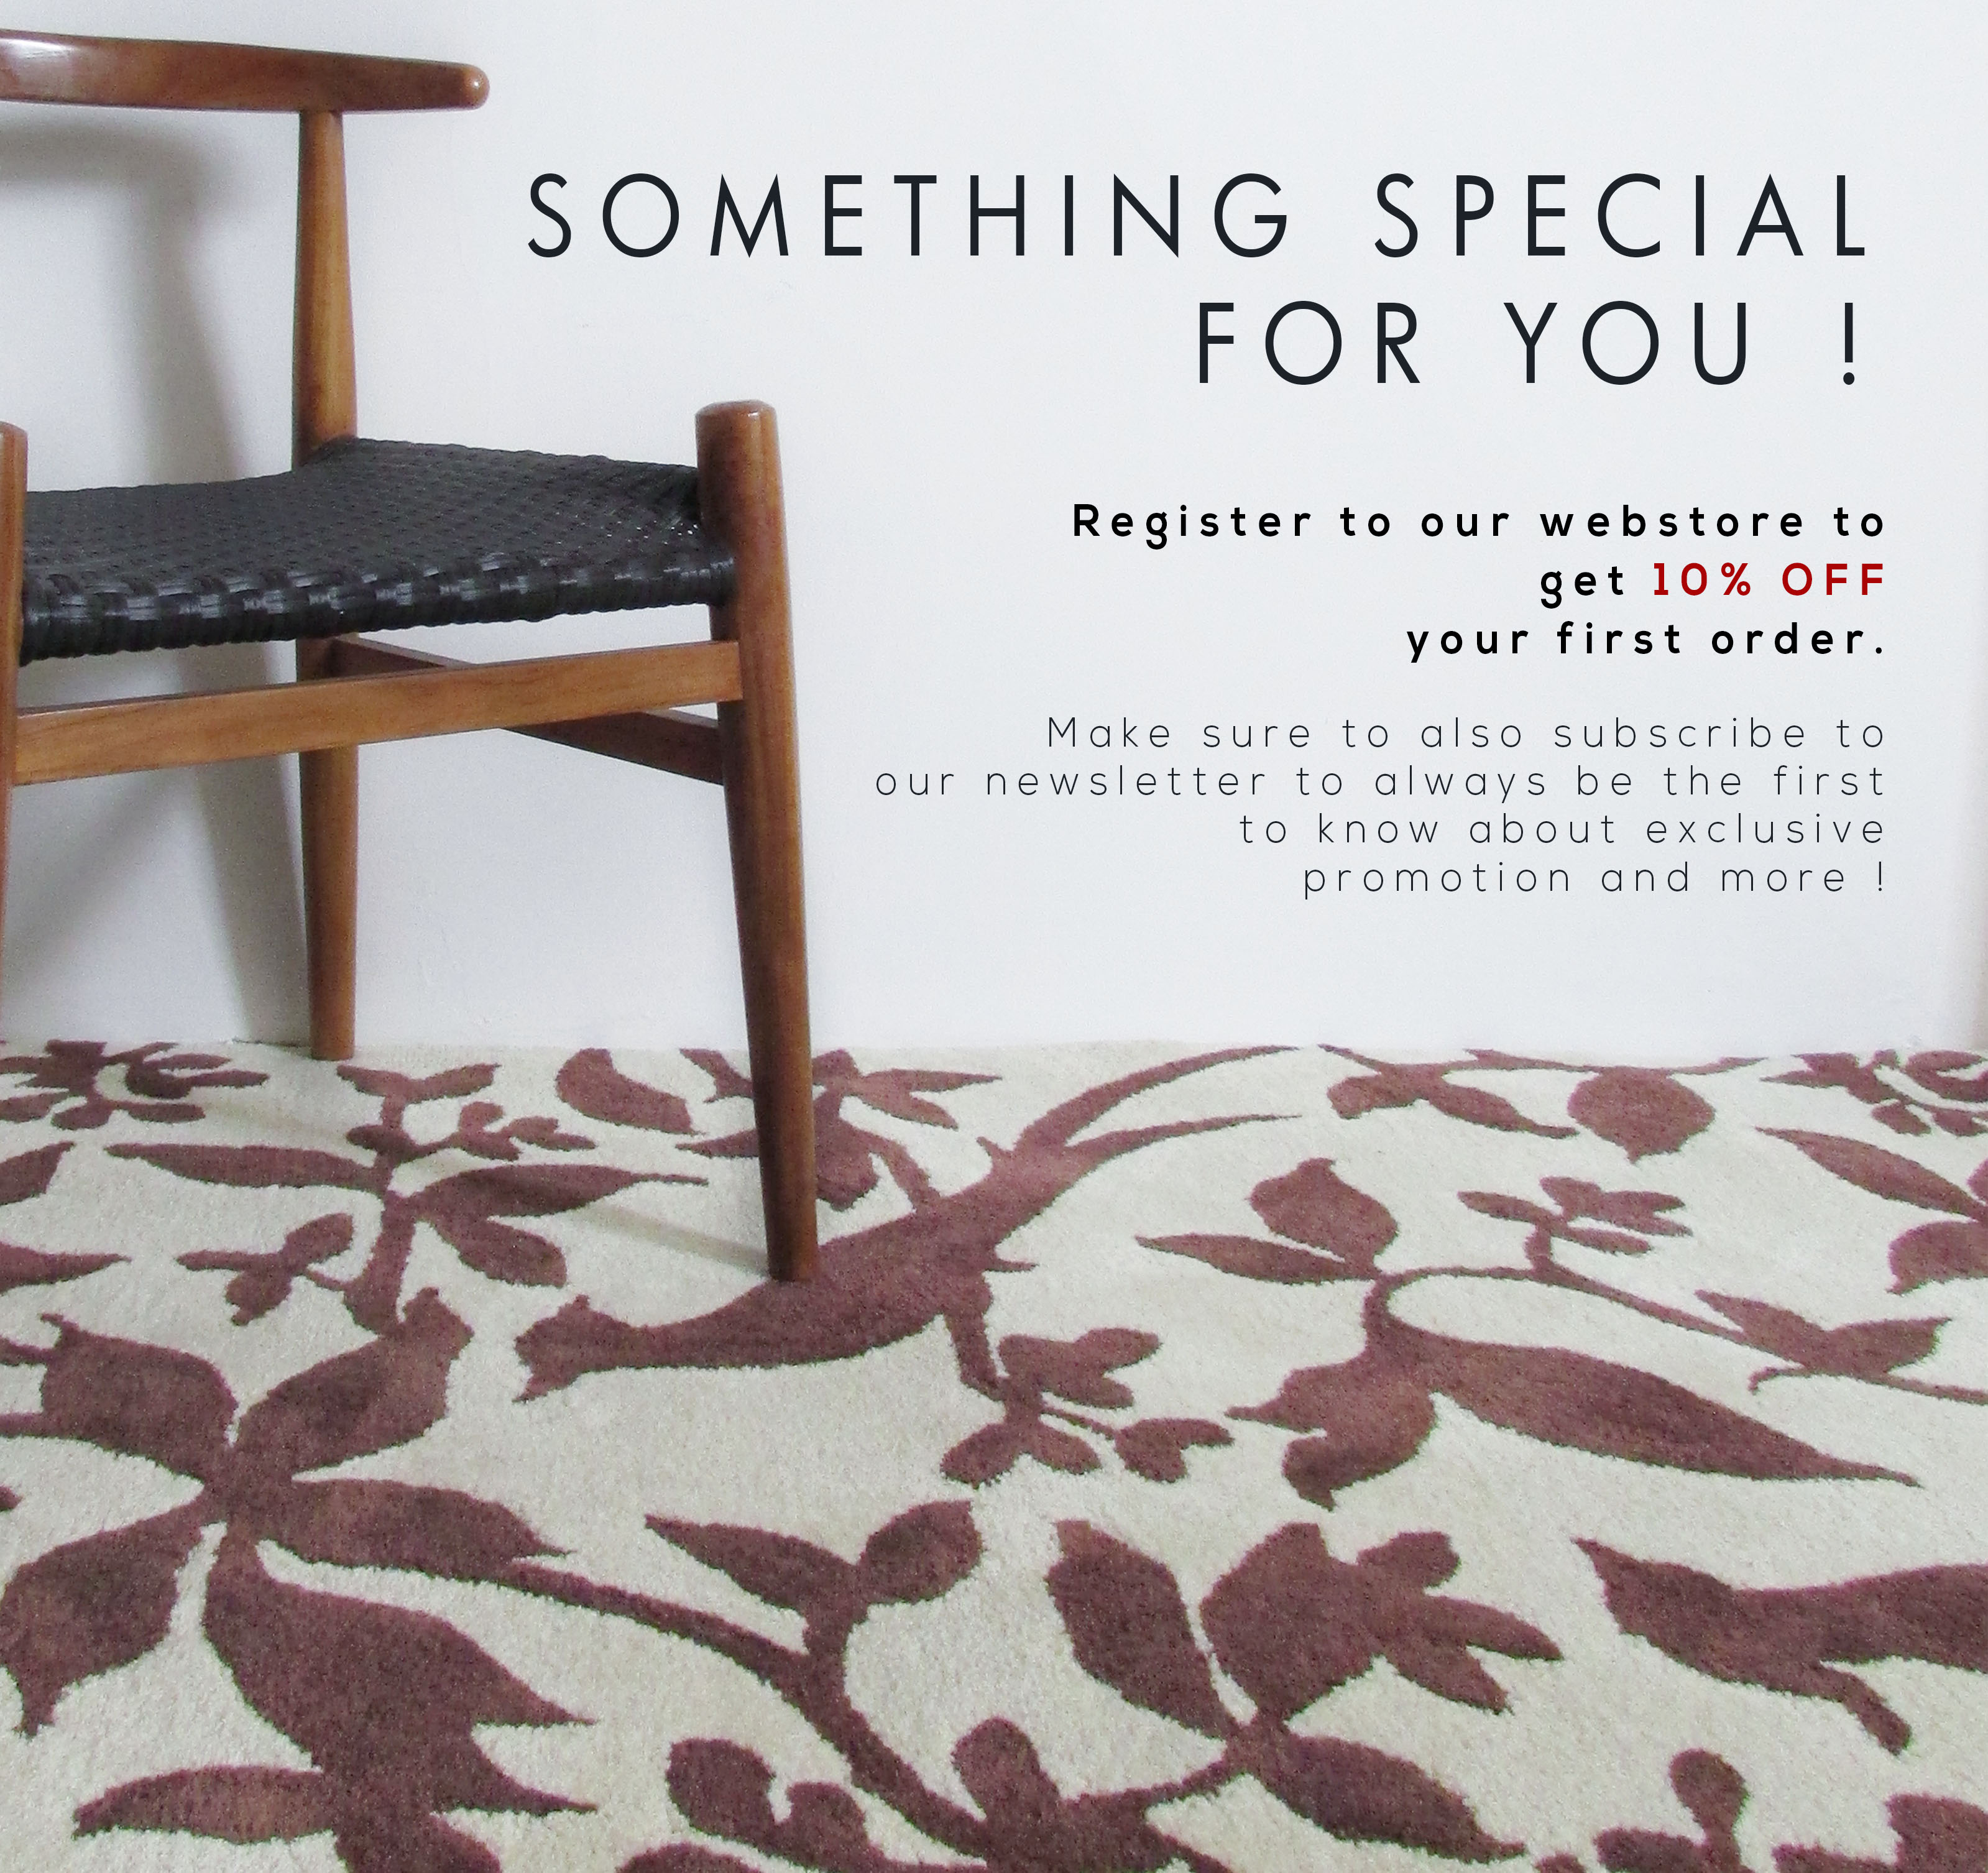 Rug House One Stop Carpet Solutions